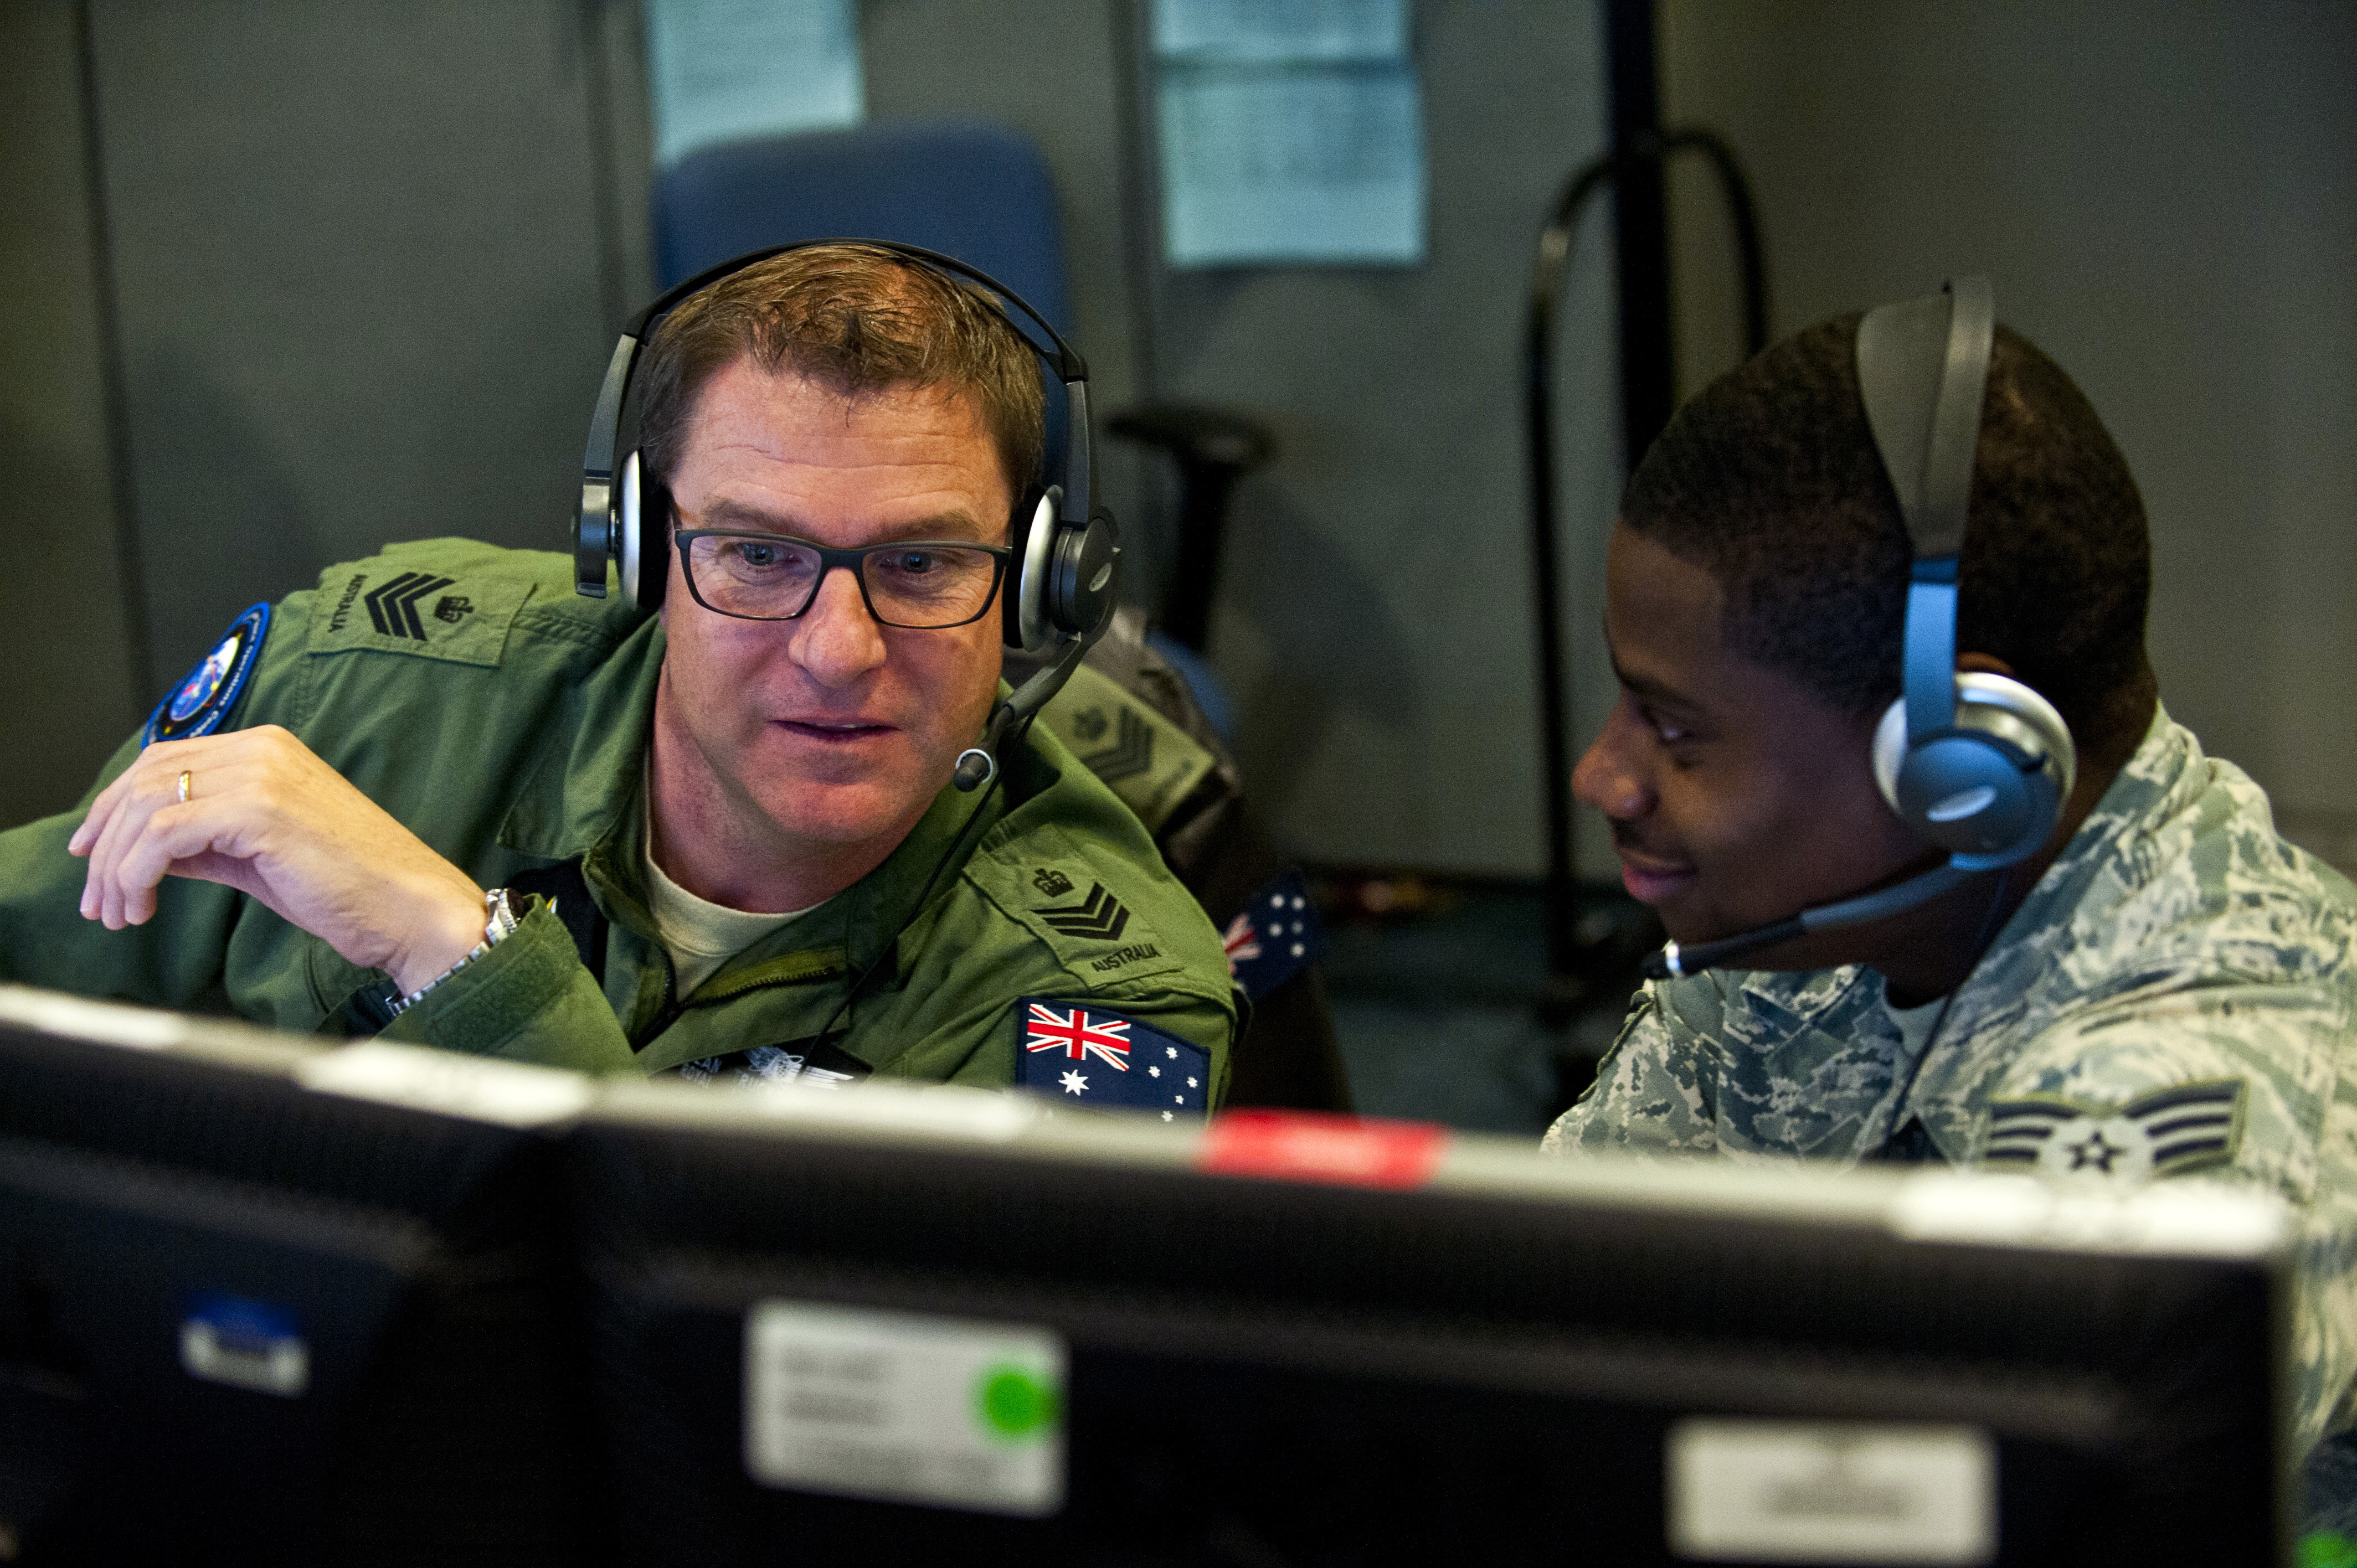 Australia S Military To Develop Cyber Enabled Warfare